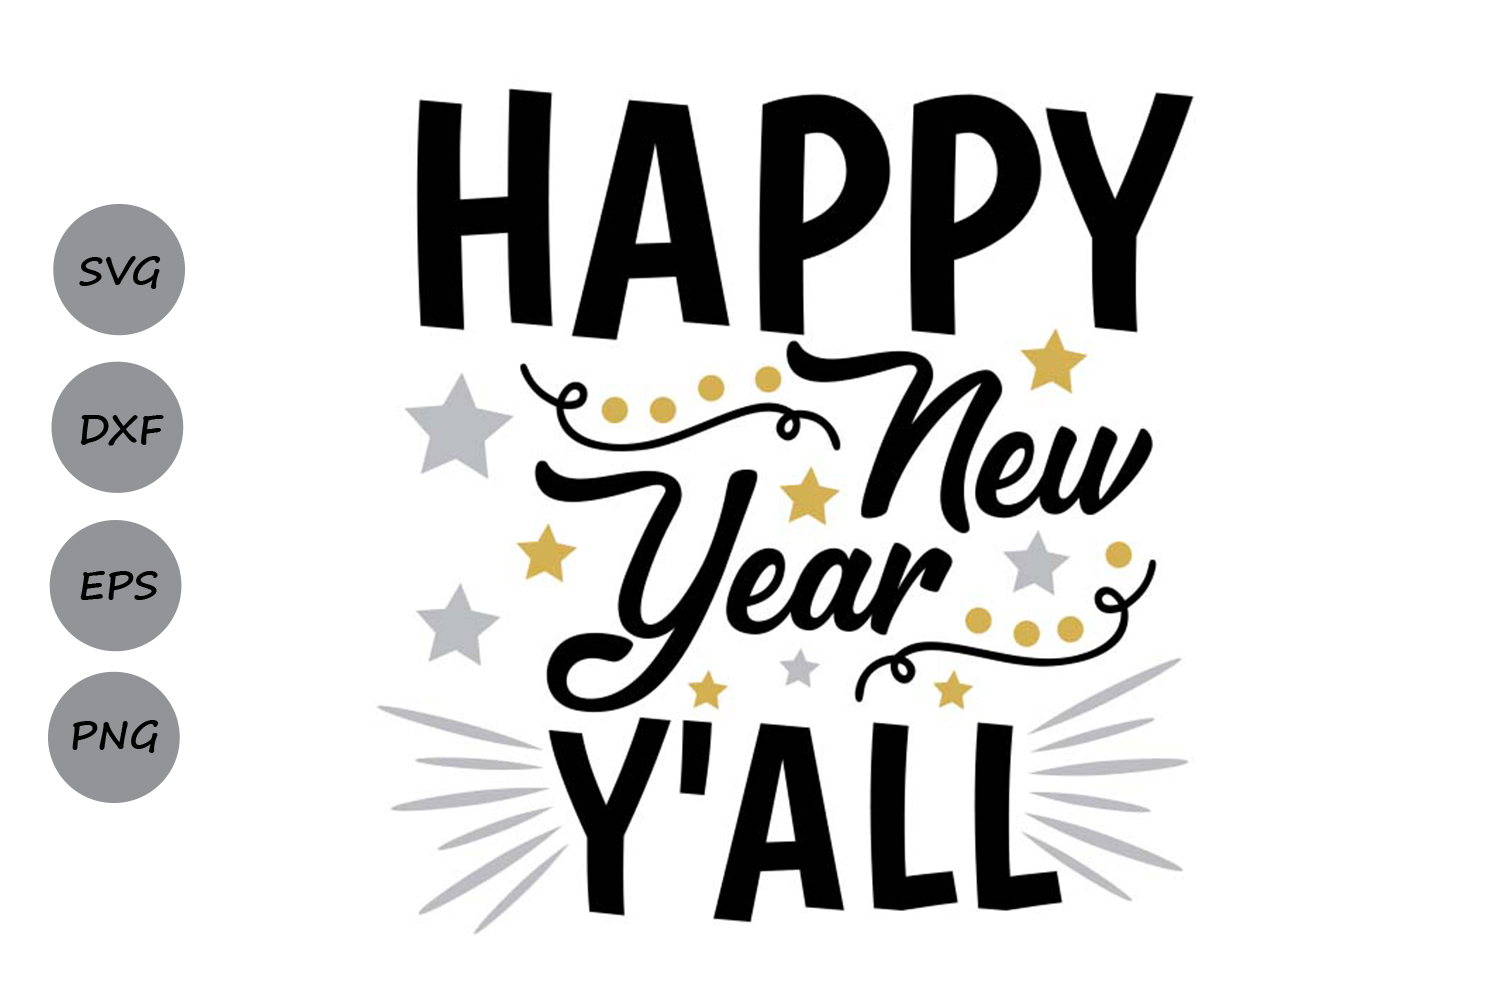 Download Free Happy New Year Y All Svg Graphic By Cosmosfineart Creative Fabrica for Cricut Explore, Silhouette and other cutting machines.